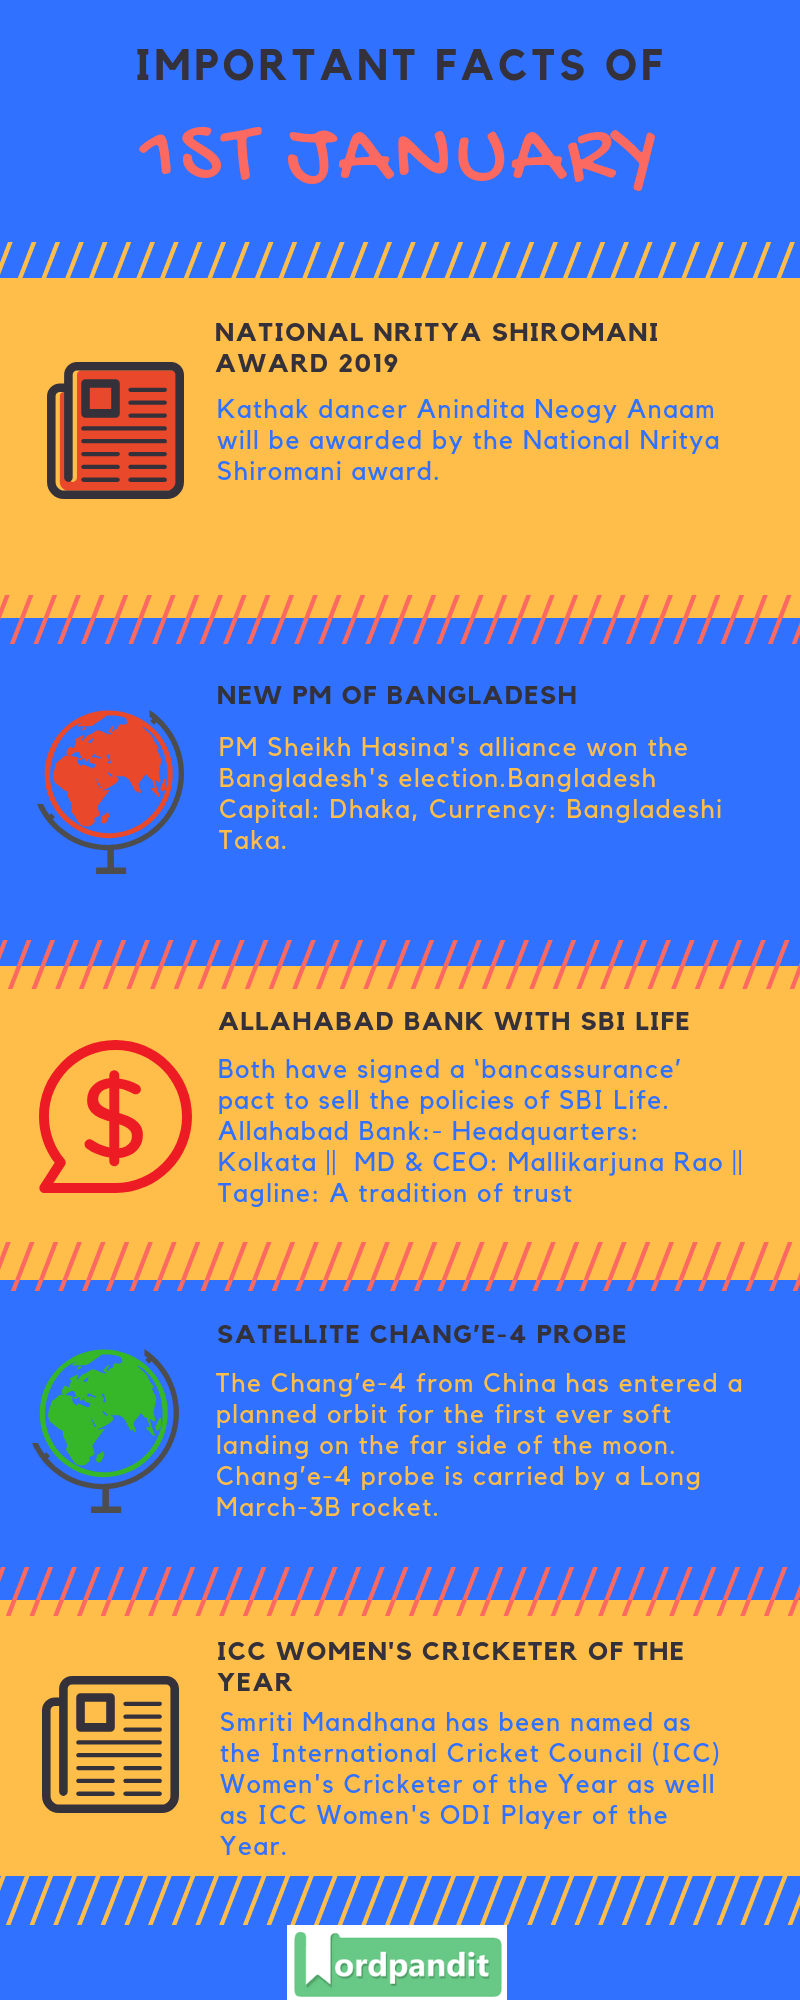 Daily Current Affairs 1 January 2019 Current Affairs Quiz 1 January 2019 Current Affairs Infographic